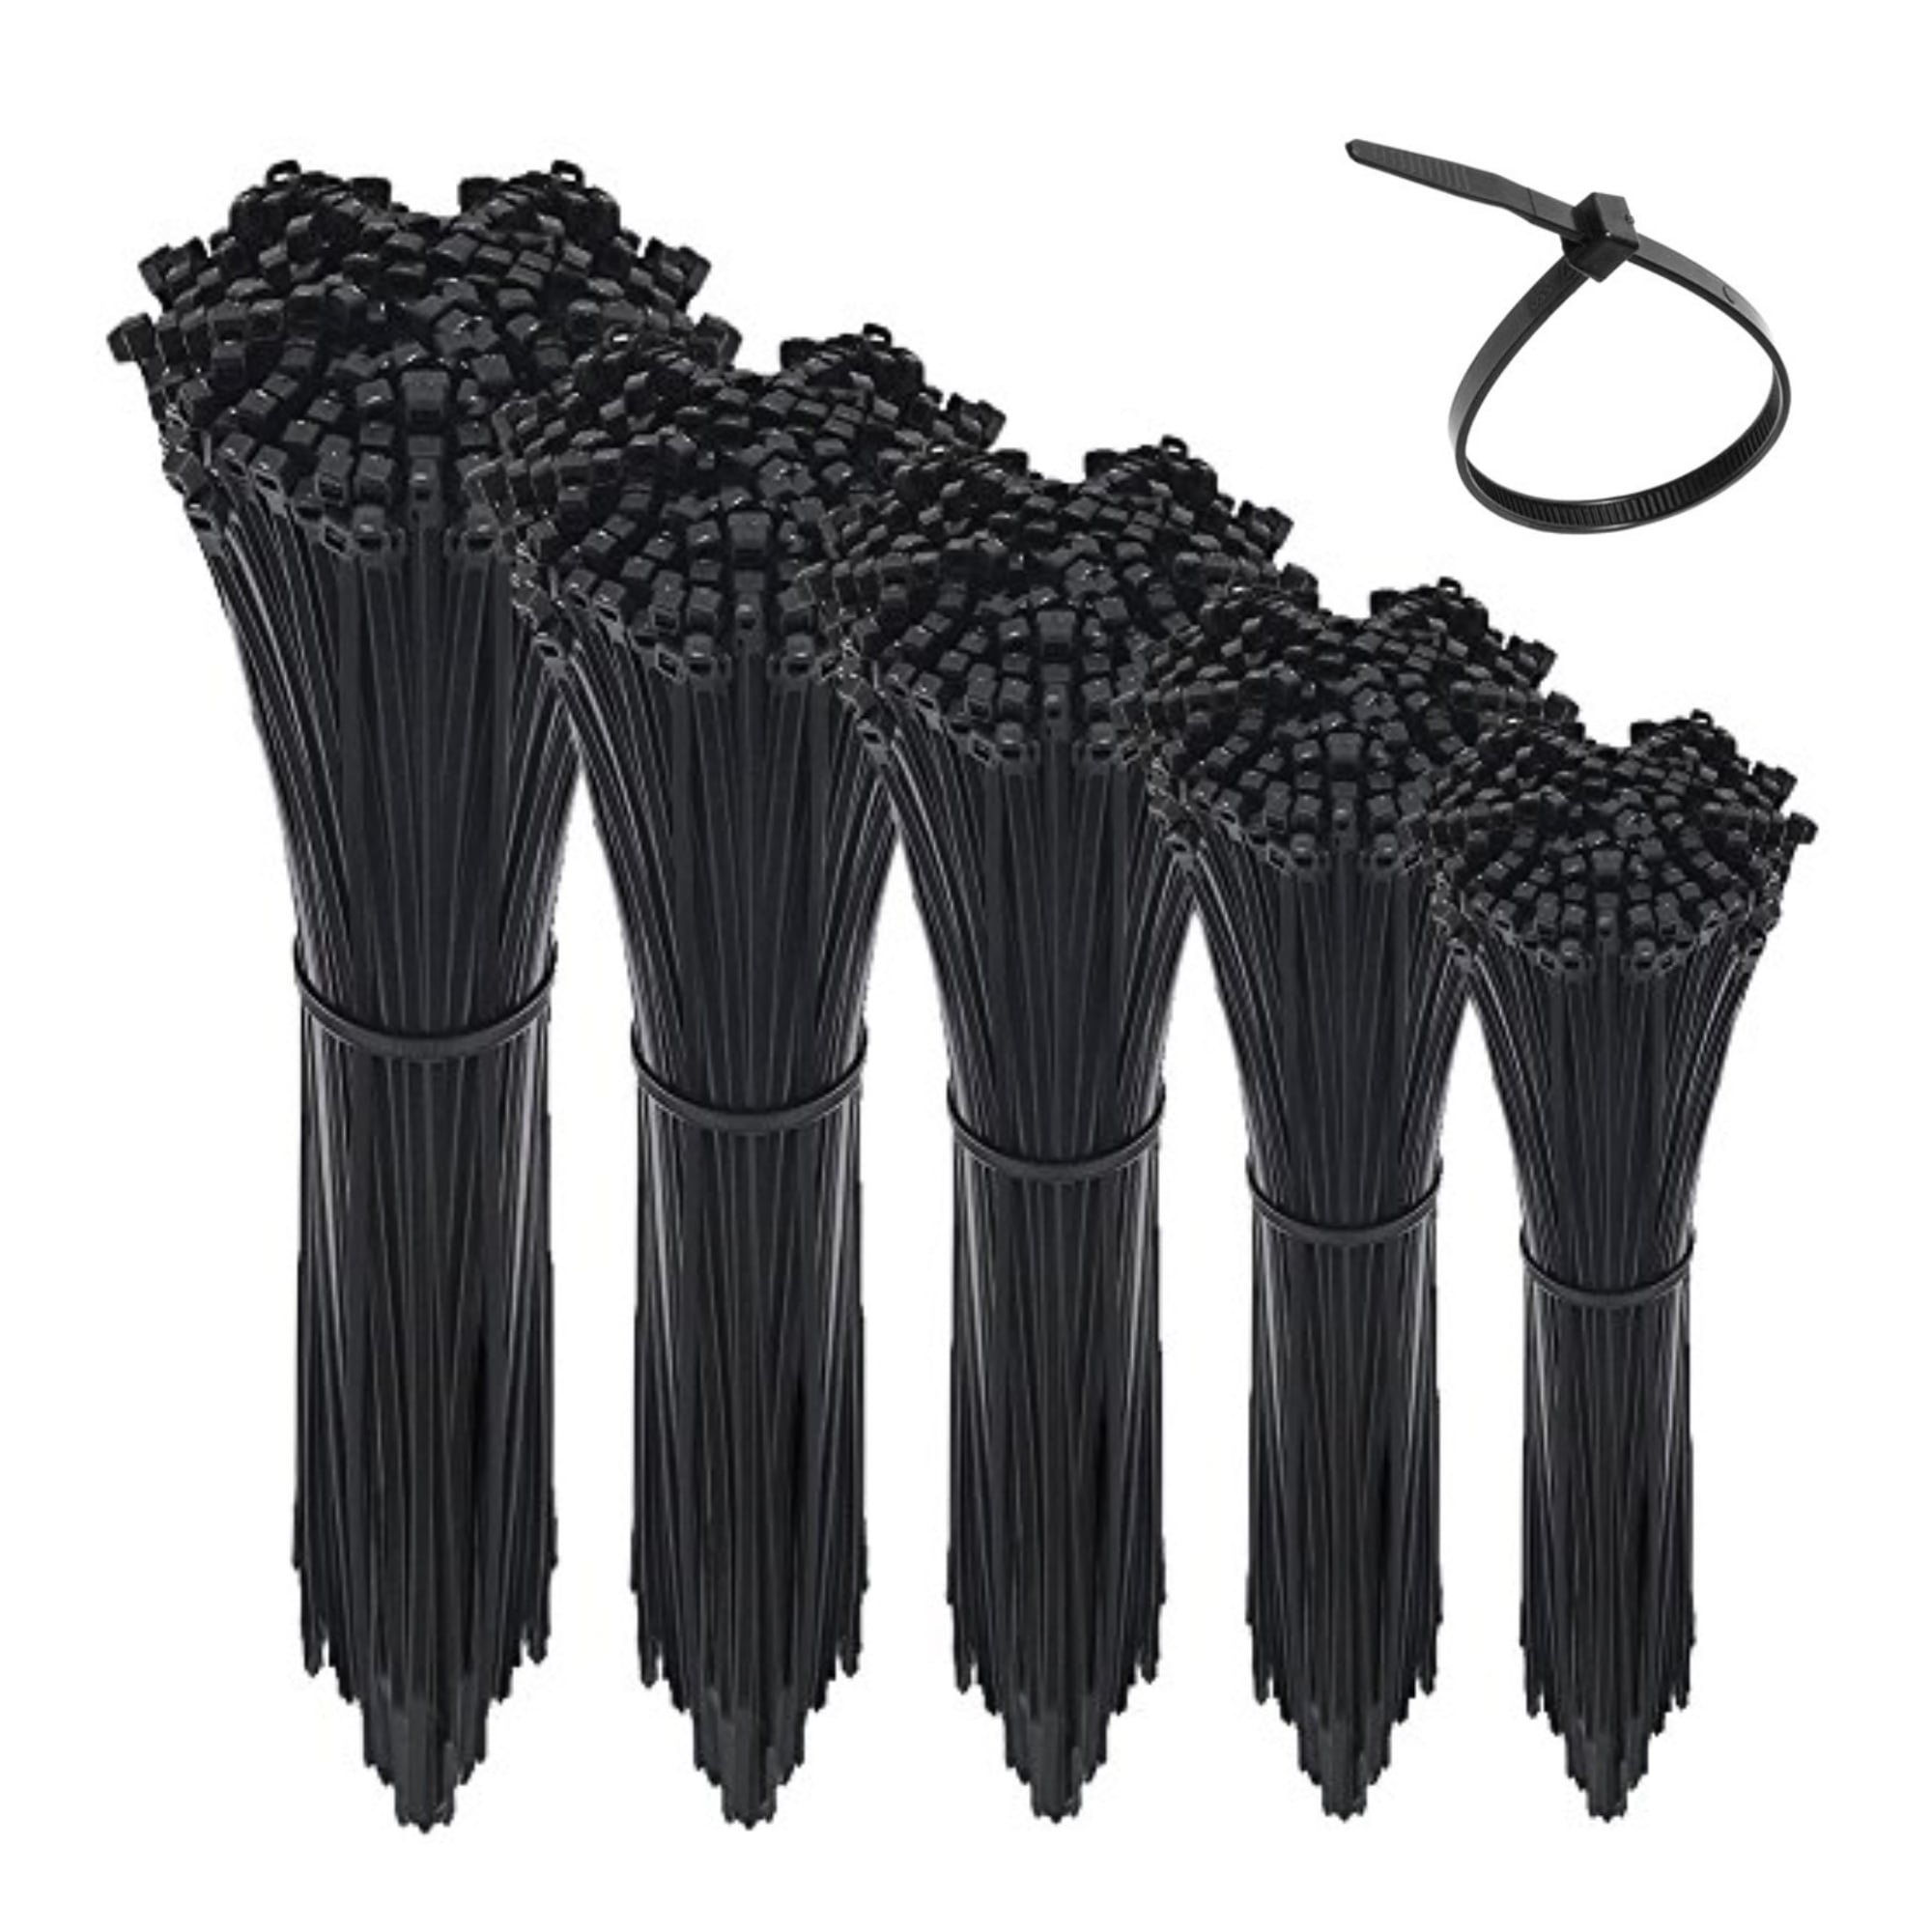 500pcs Cable Zip Ties 3.6mm x 200mm Black Nylon UV Stabilised